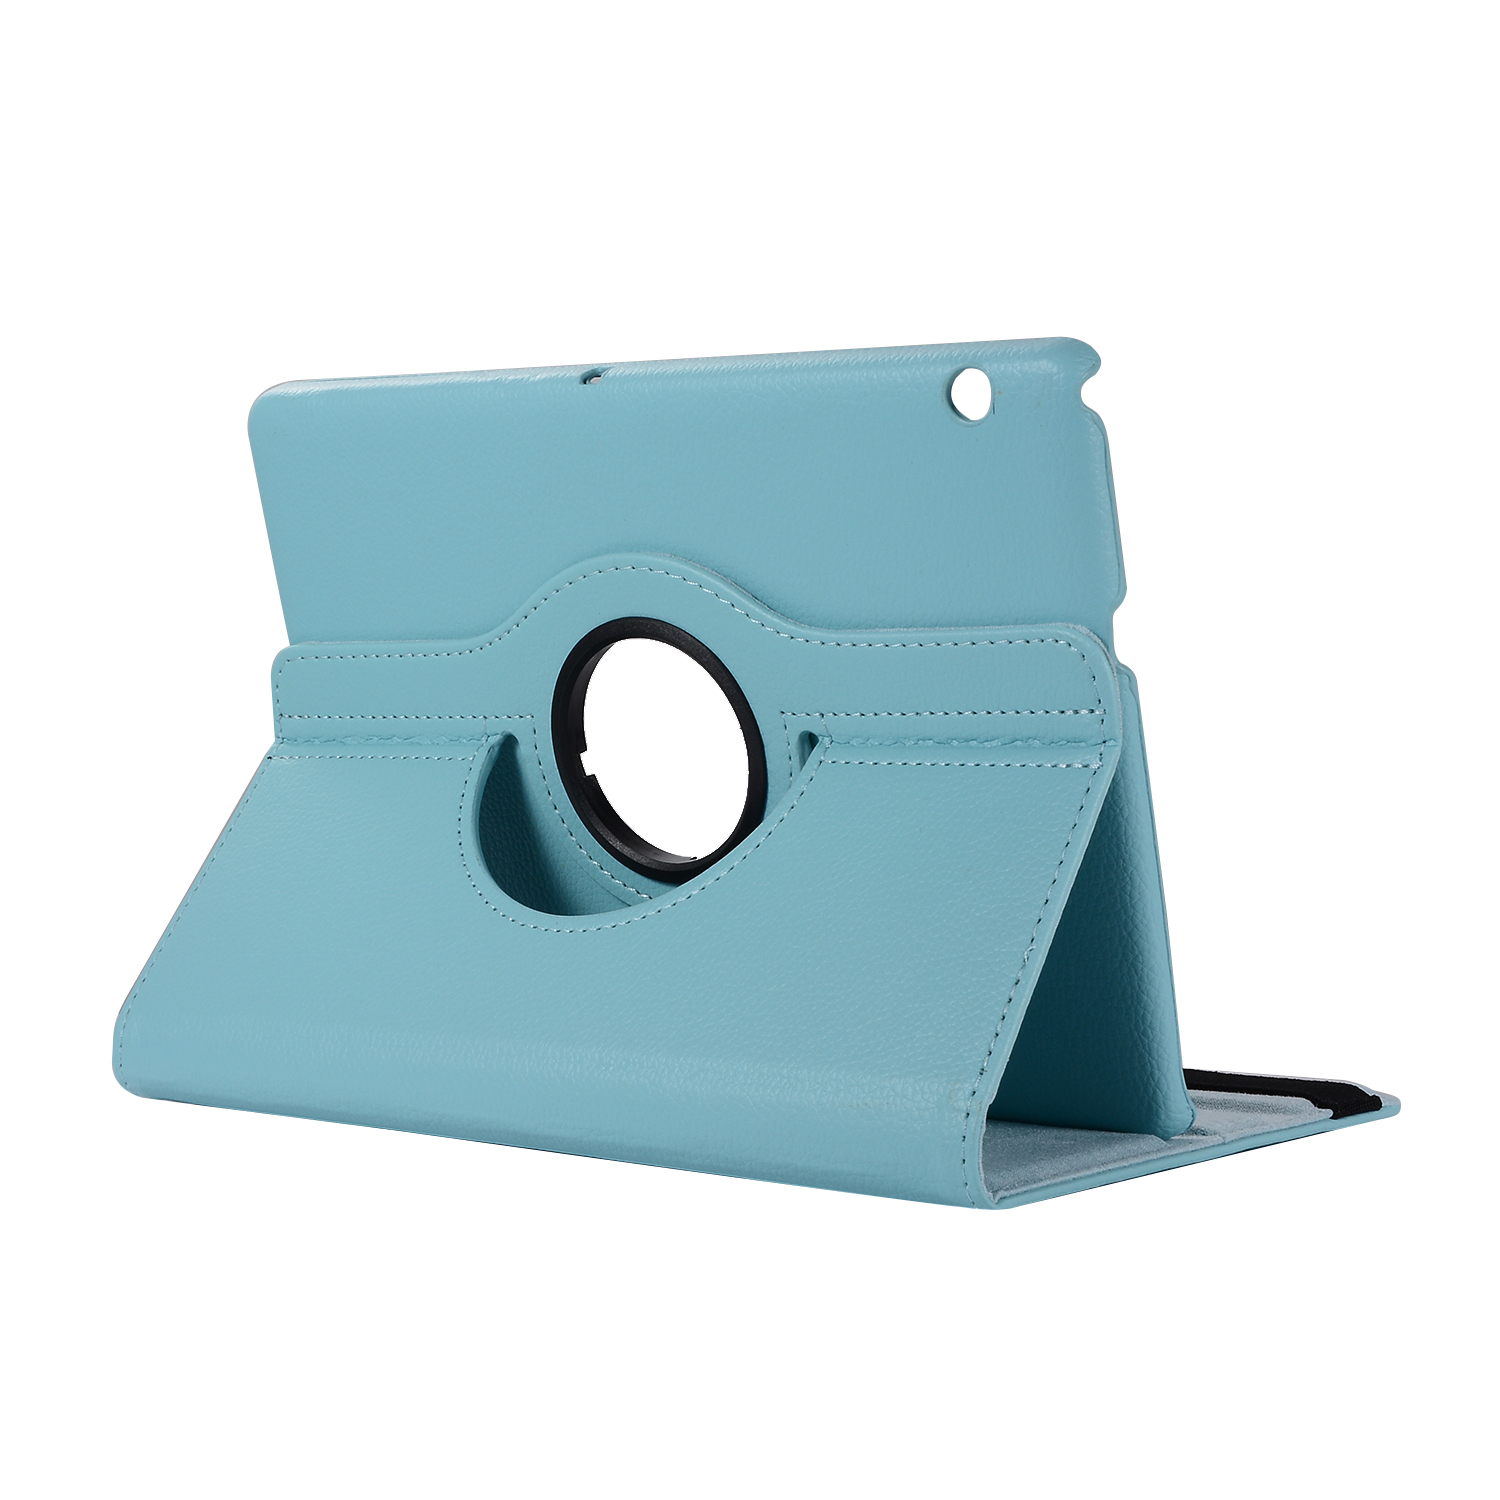 PU Leather Stand Litchi 360 Rotating Case For Huawei MediaPad T3 10 9.6 inch AGS-L09 AGS-W09 AGS-L03 Tablet Funda Luxury Cover